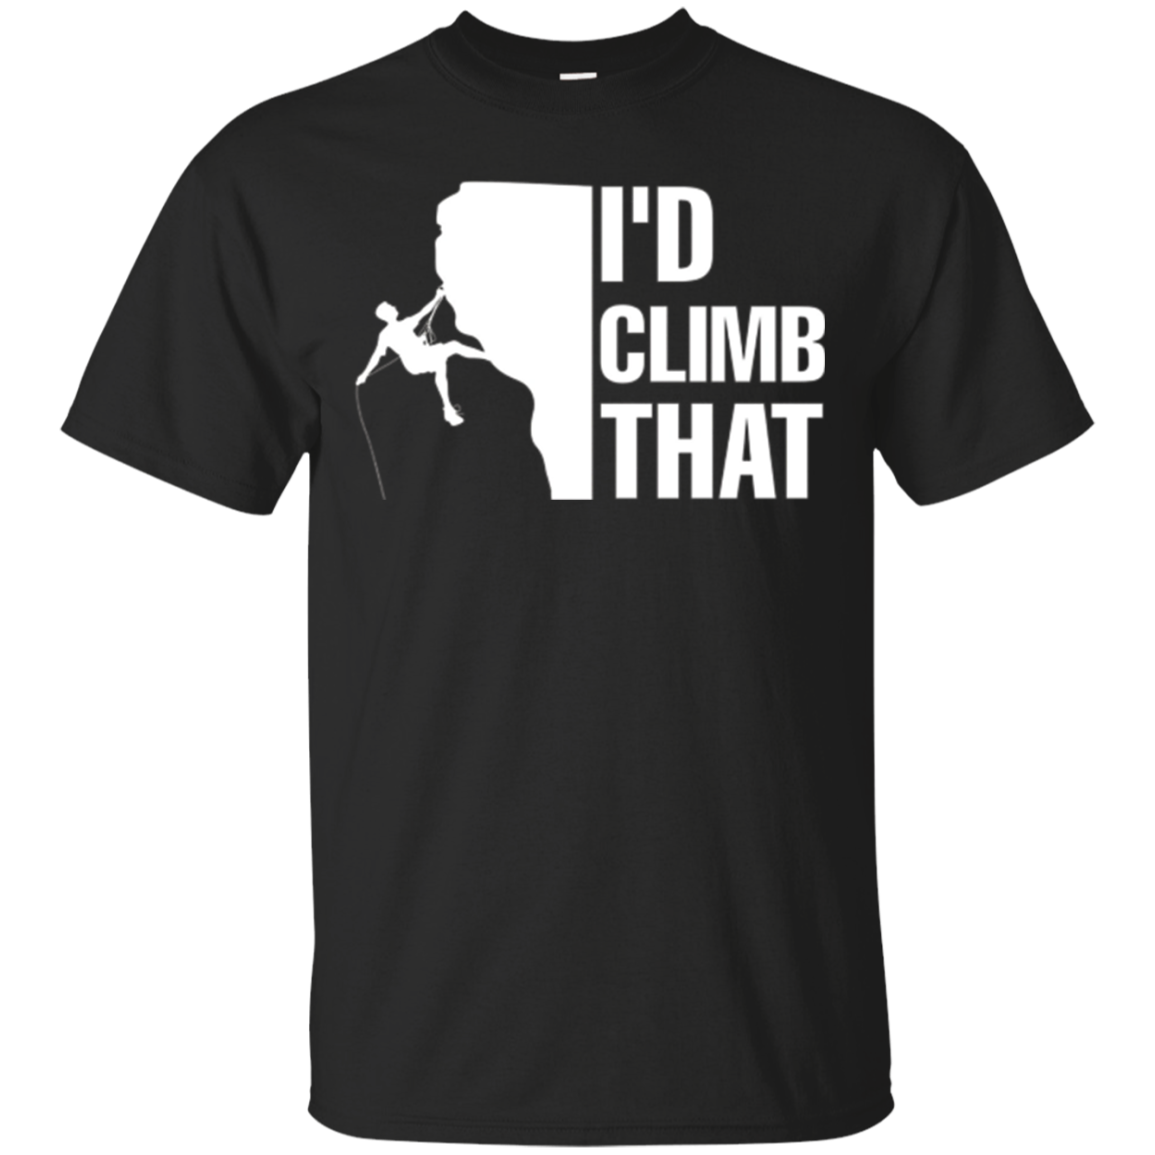 I'd Climb That T-Shirt - Funny Rock Climbing Tee Shirt